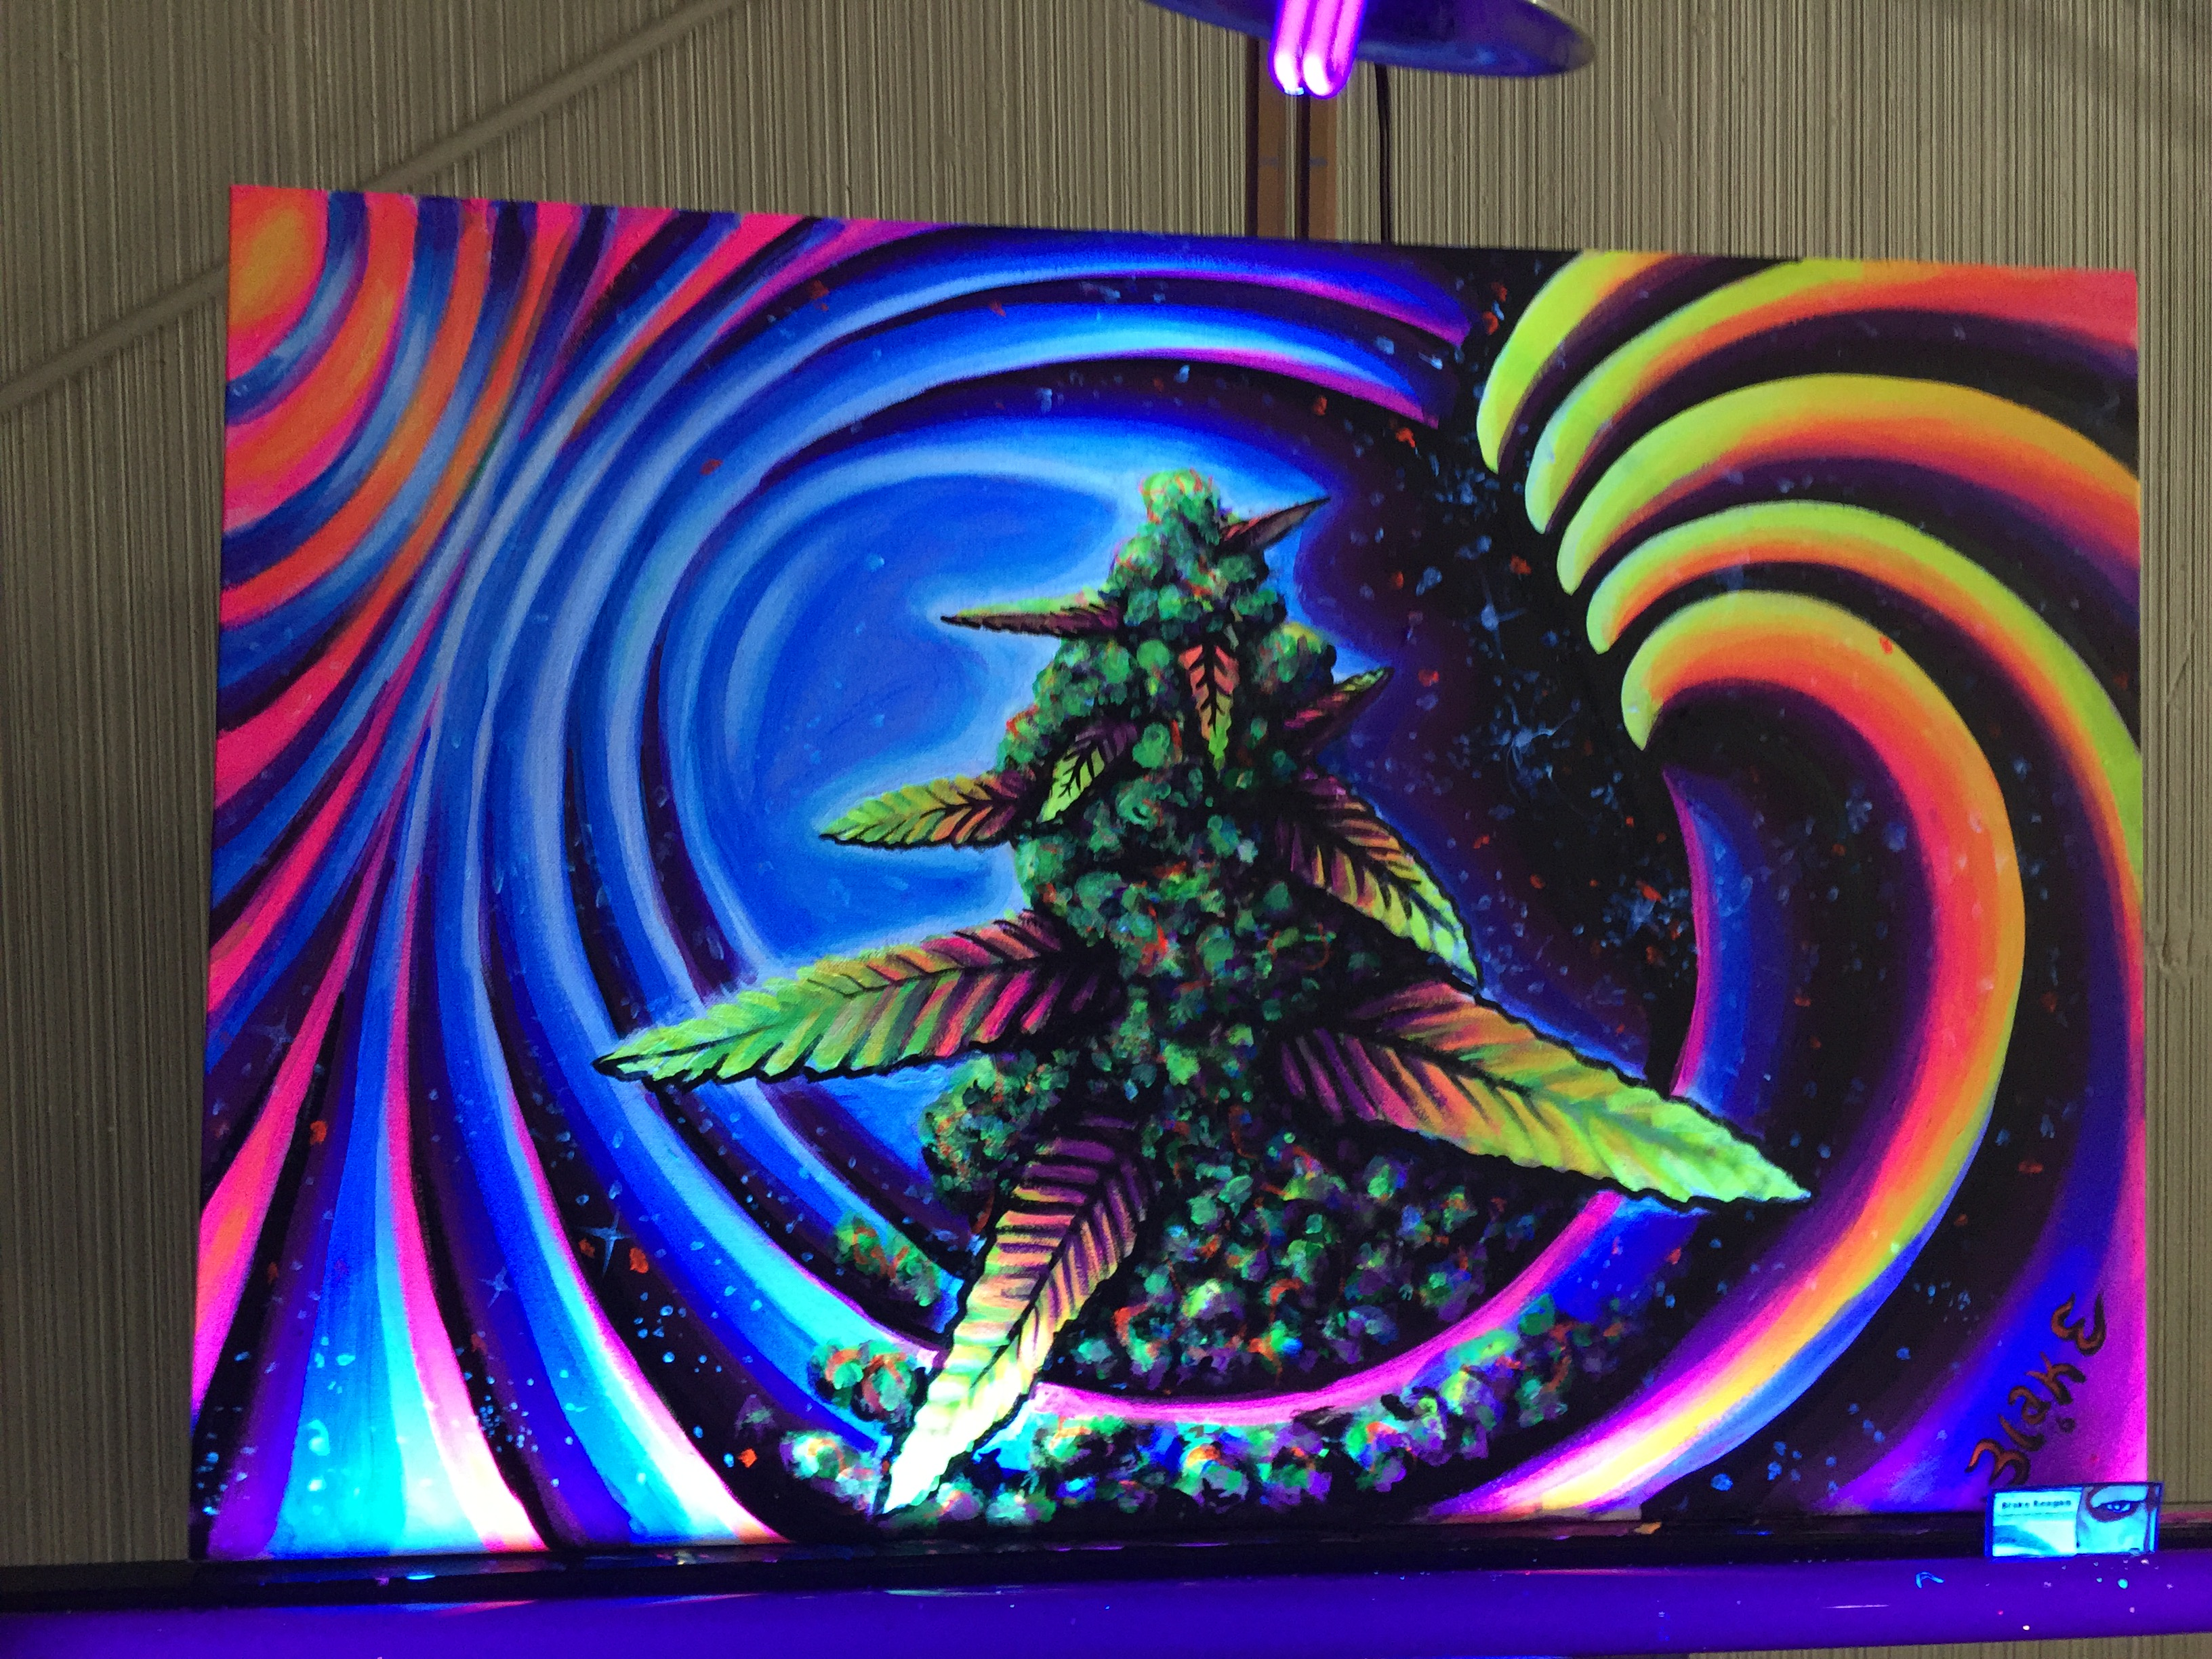 Glow in the Dark Art: live art done in real time at Cannifest